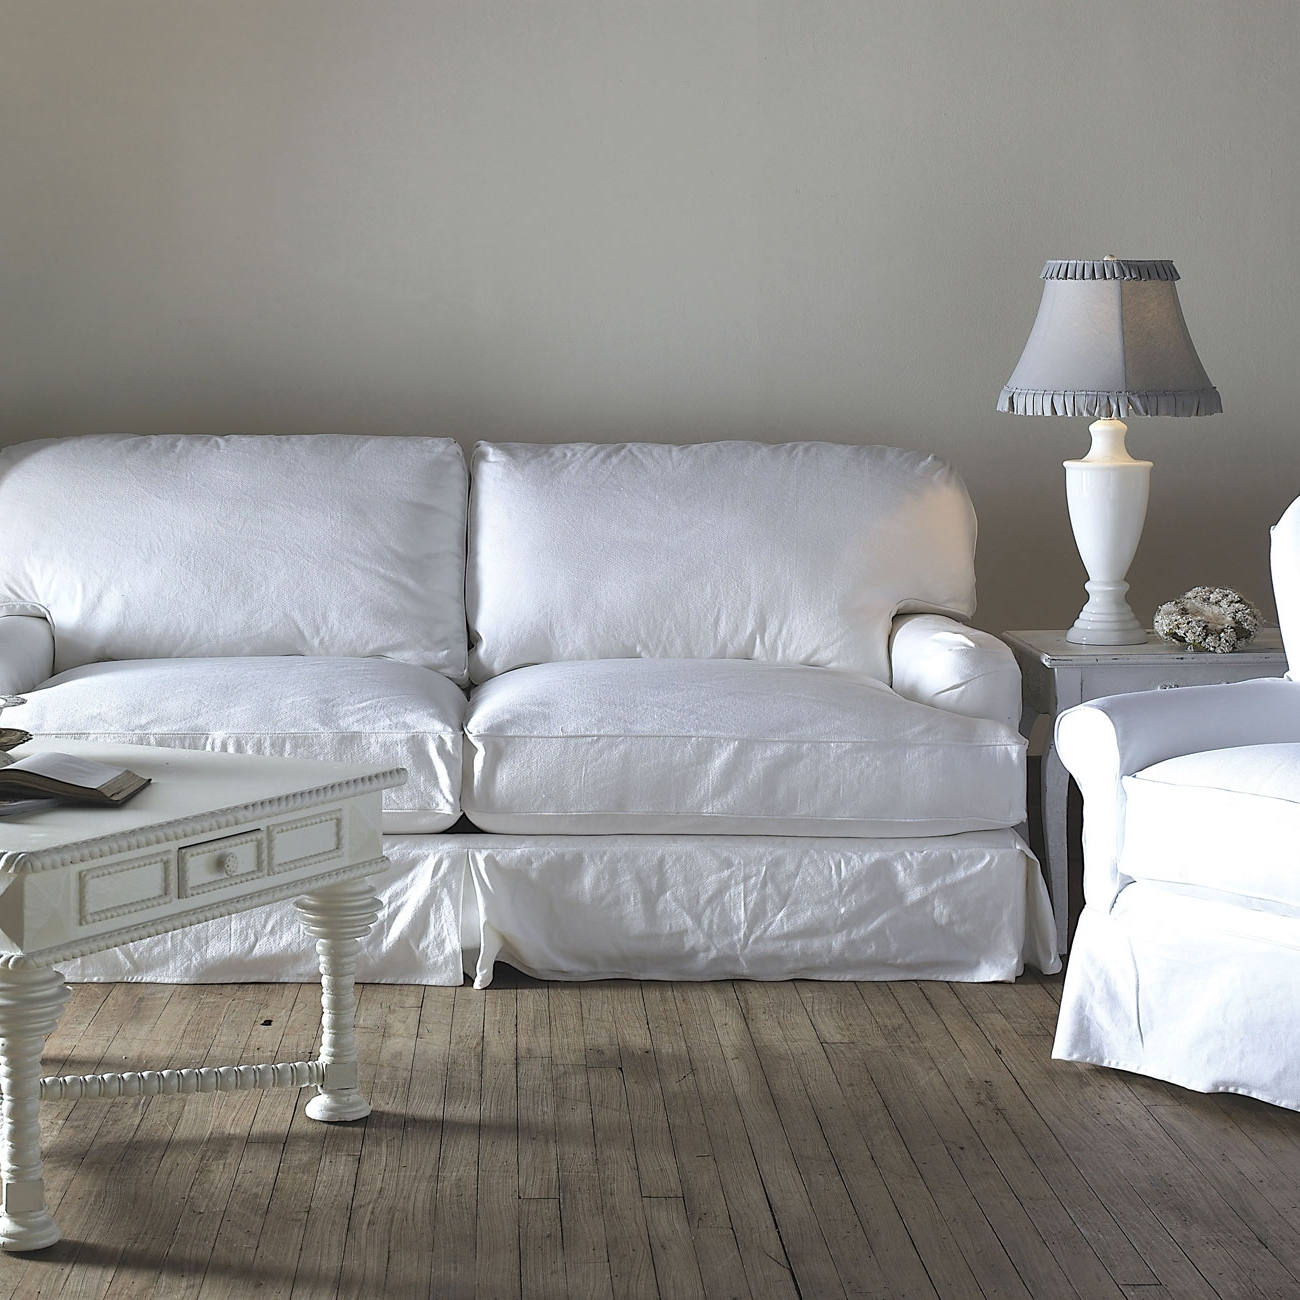 Top Home Designs With Shabby Chic Sofas (View 13 of 15)